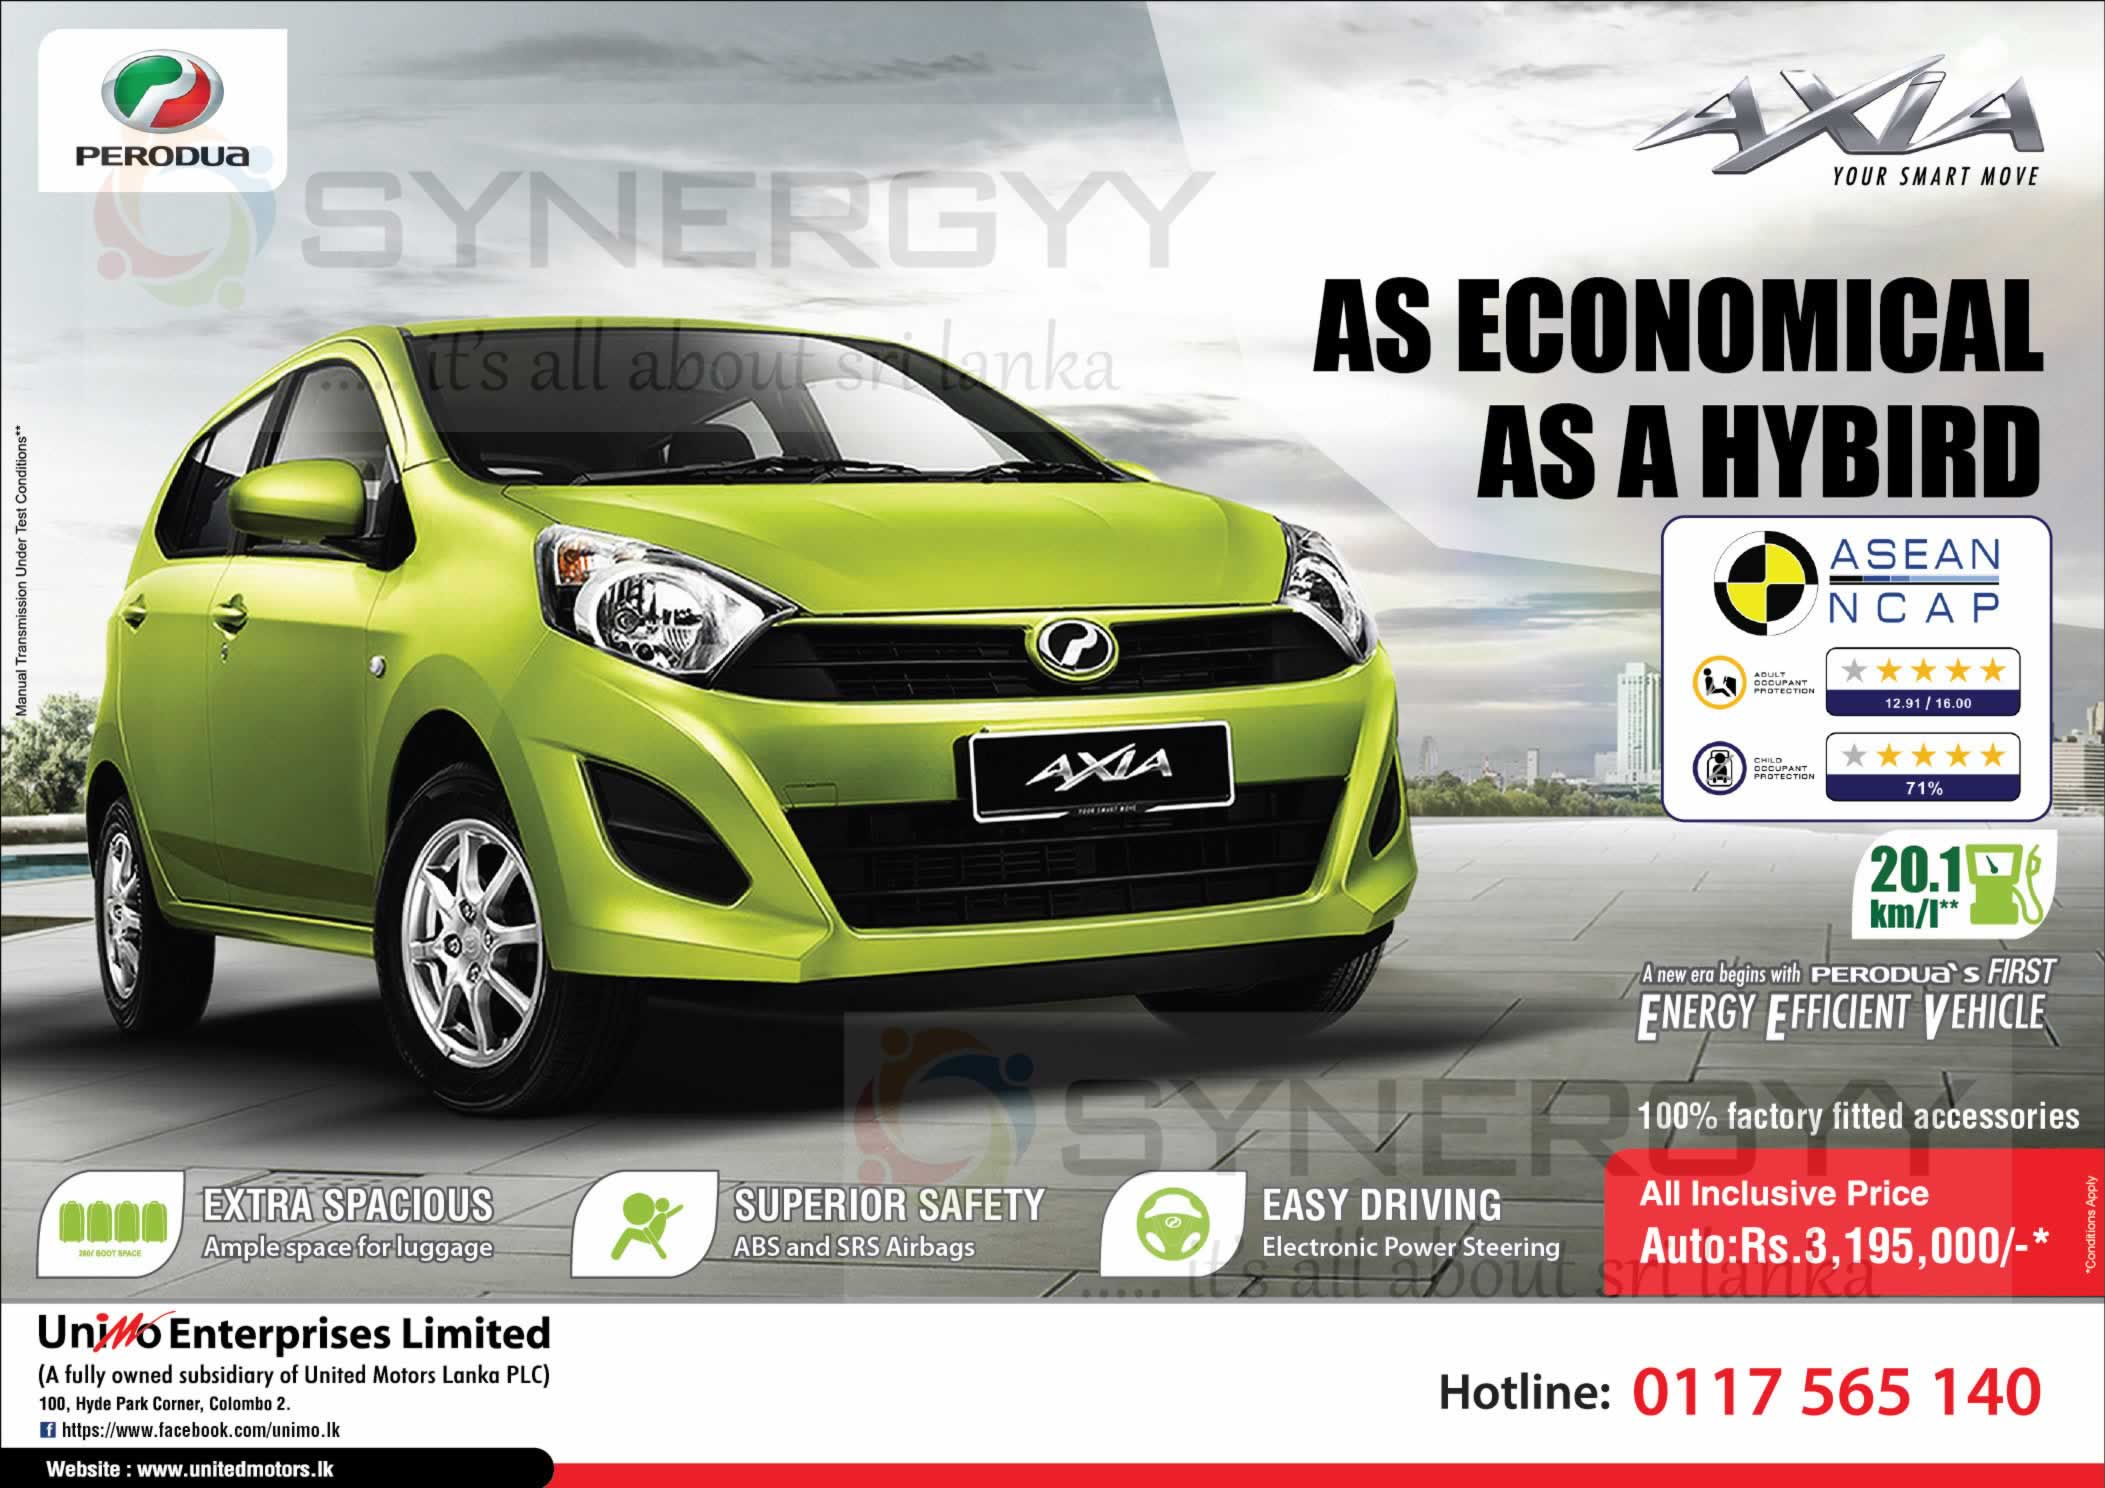 Perodua Axia Auto Rs 3 195 000 00 All Inclusive Price